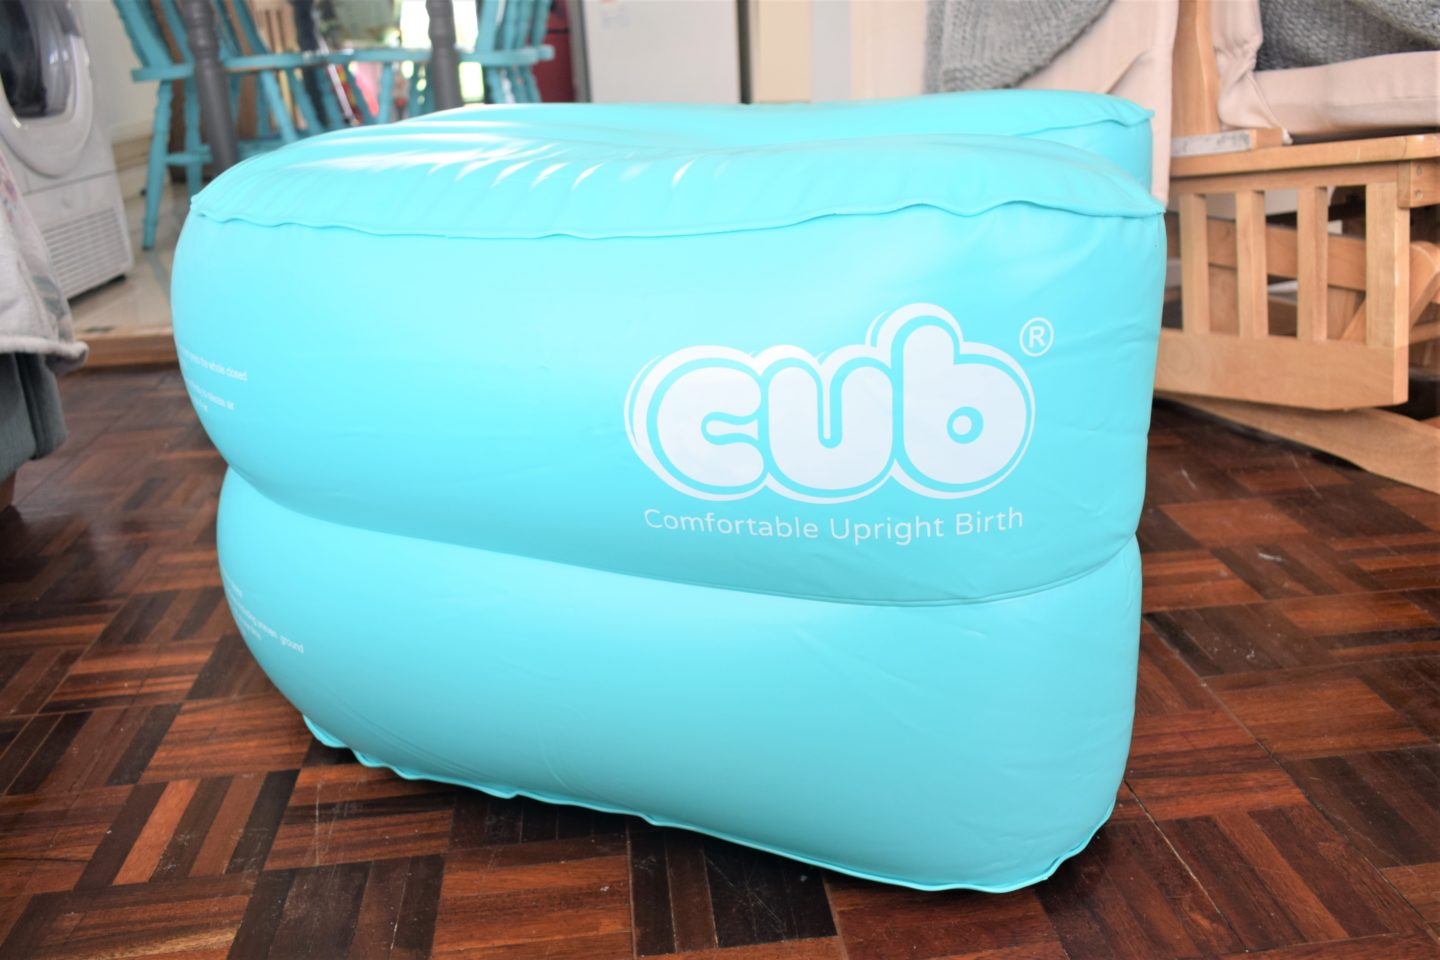 homebirth CUB chair